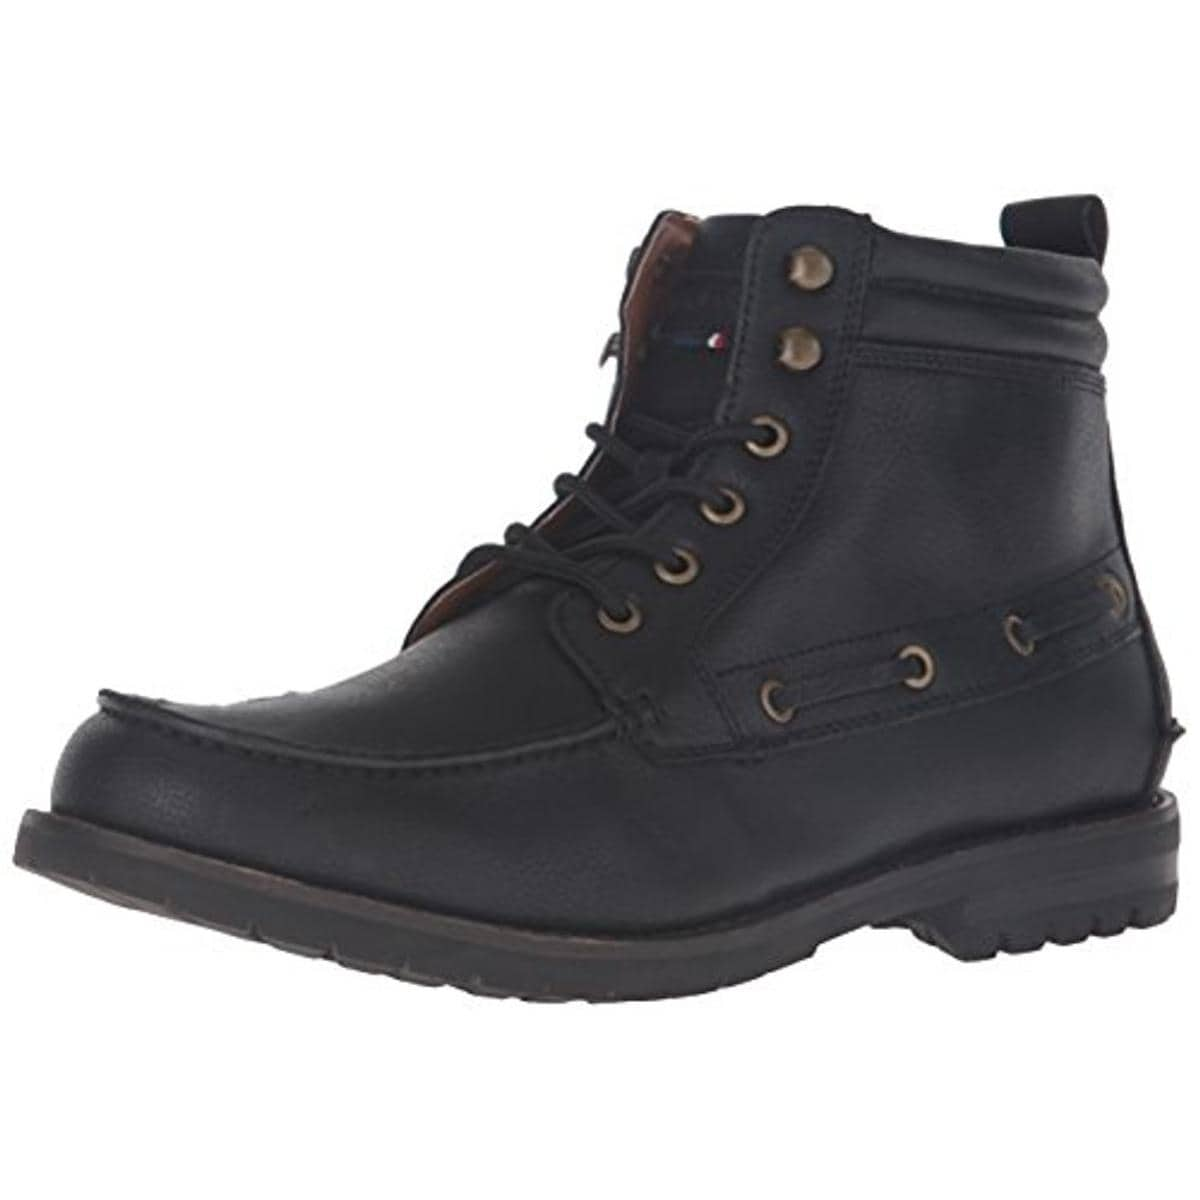 a323e34f6025ff Tommy Hilfiger Mens Beaumont Winter Boots Faux Leather Lace Up - 7.5 medium  (d). by Tommy Hilfiger